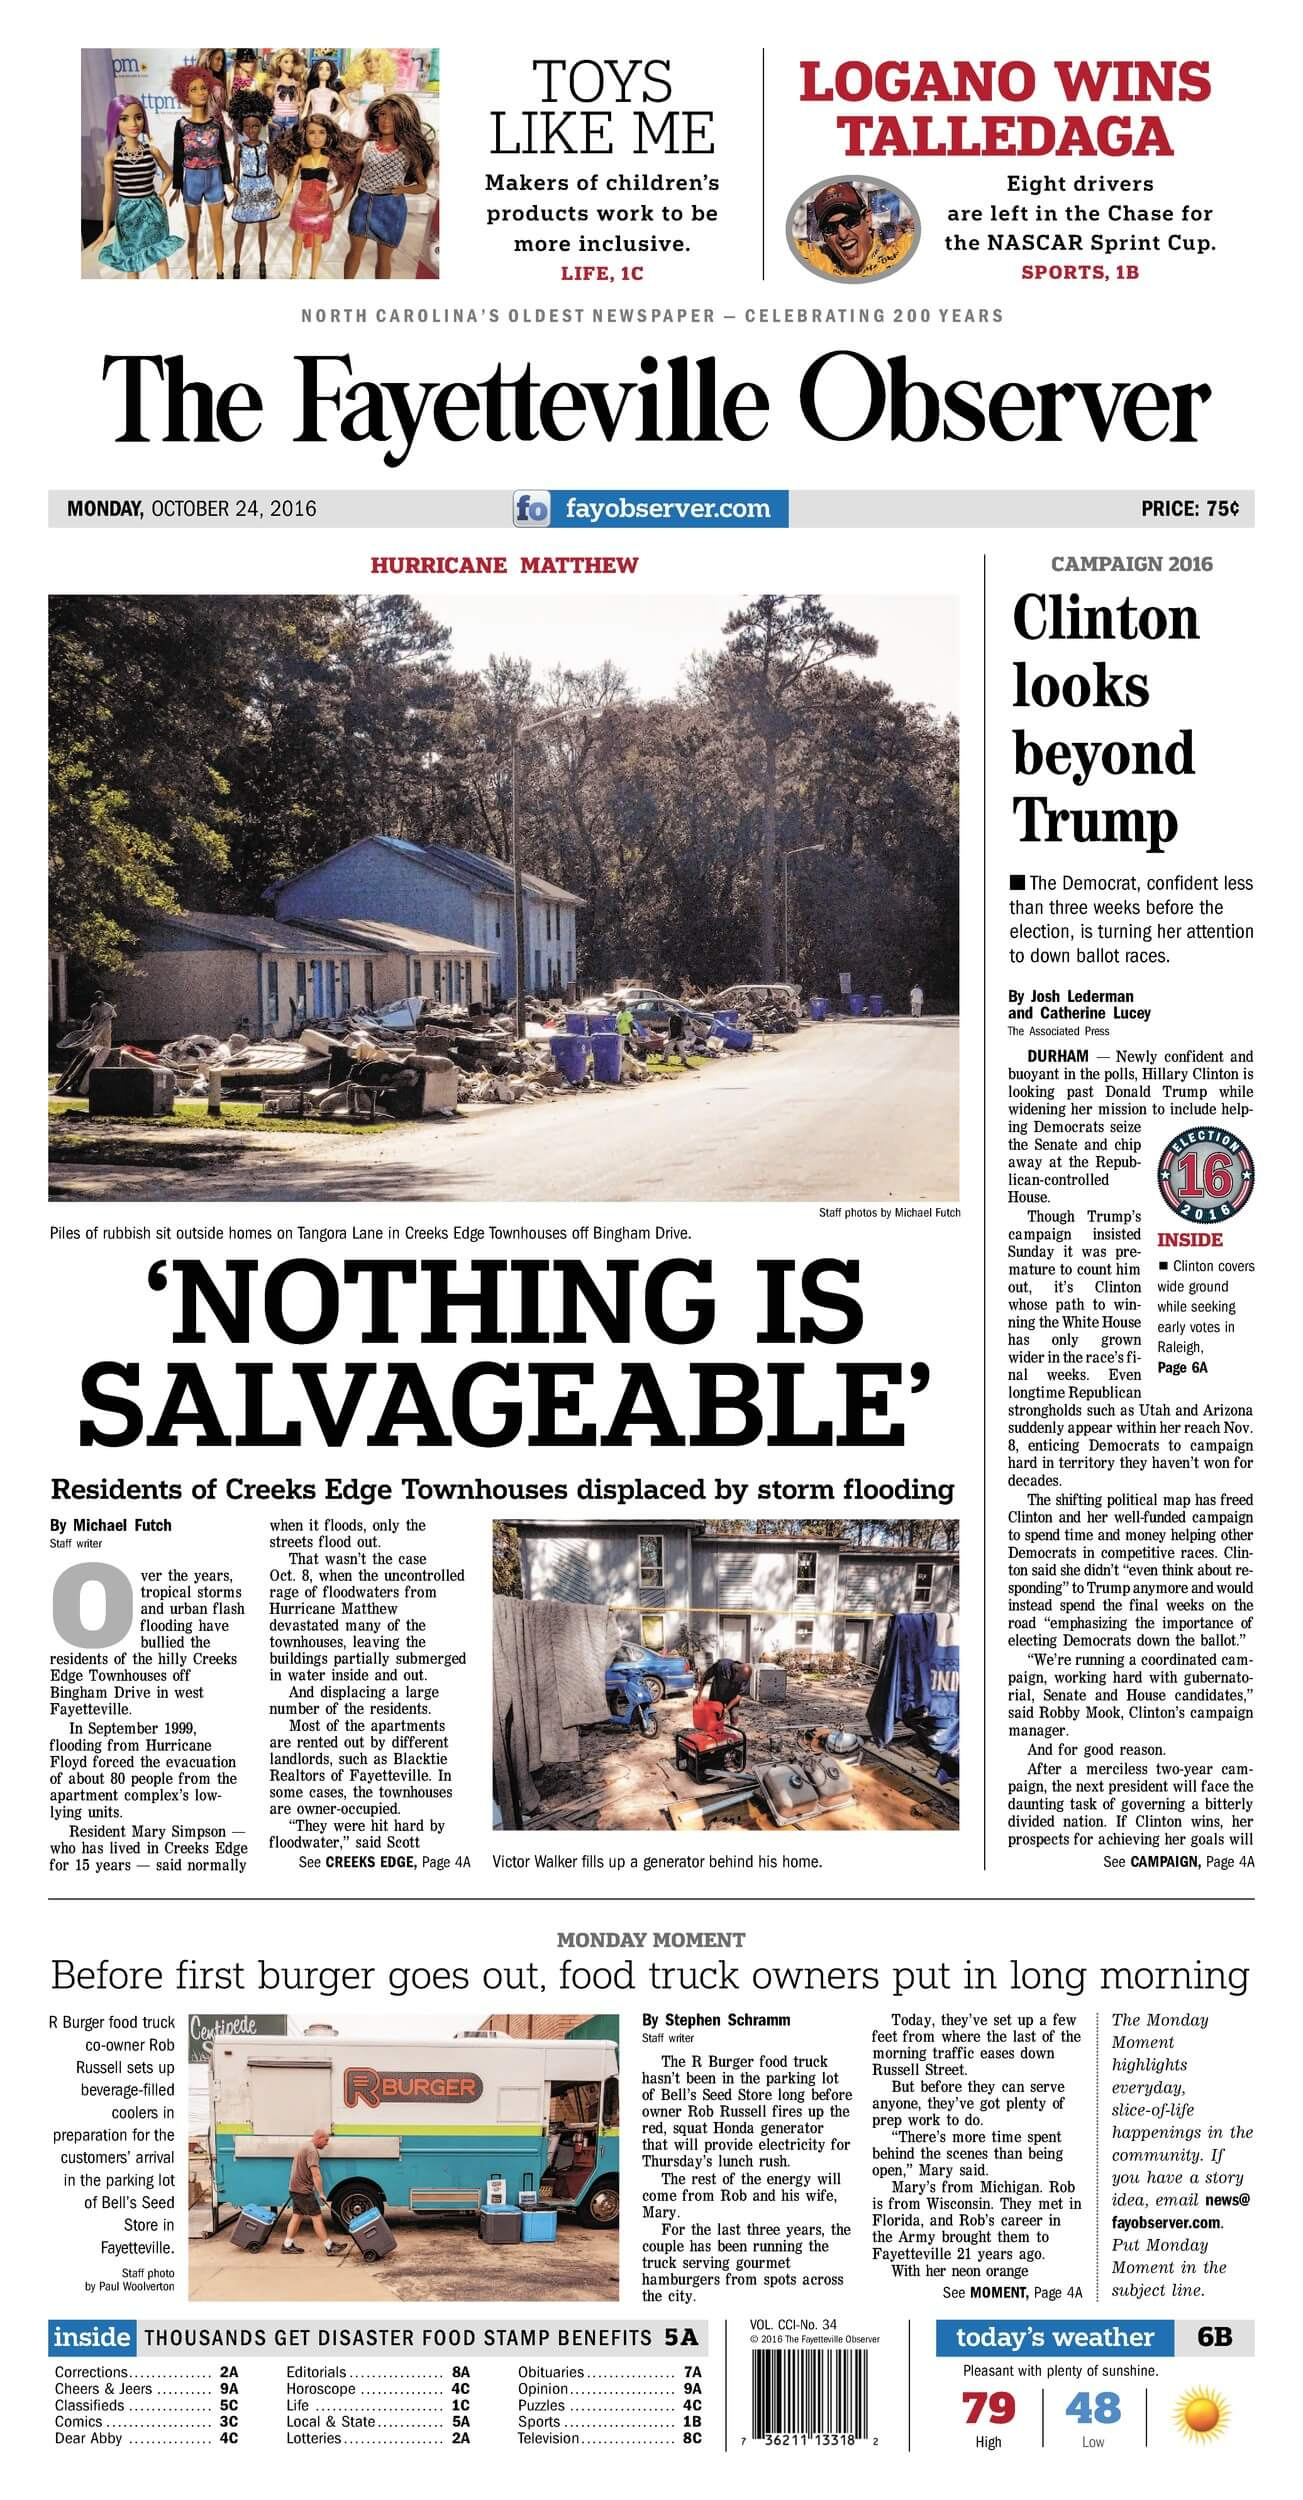 North Carolina newspapers 15 The Fayetteville Observer